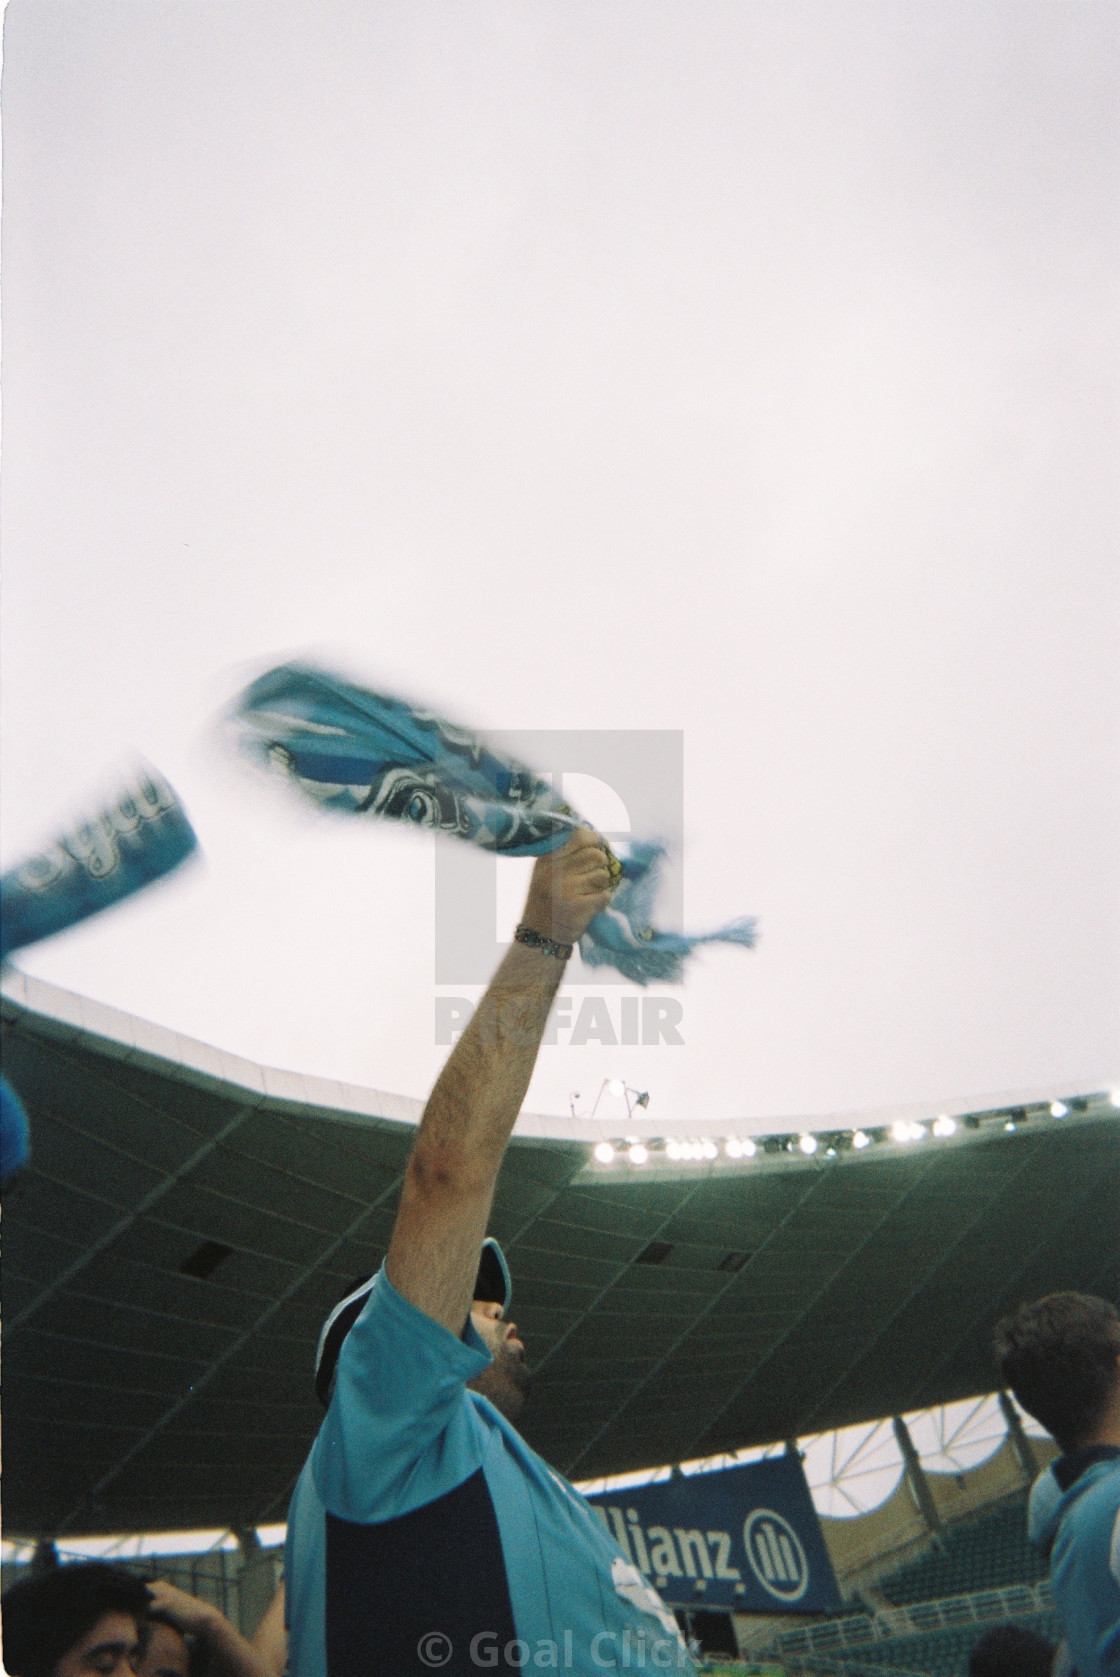 """Football fan waving scarf"" stock image"